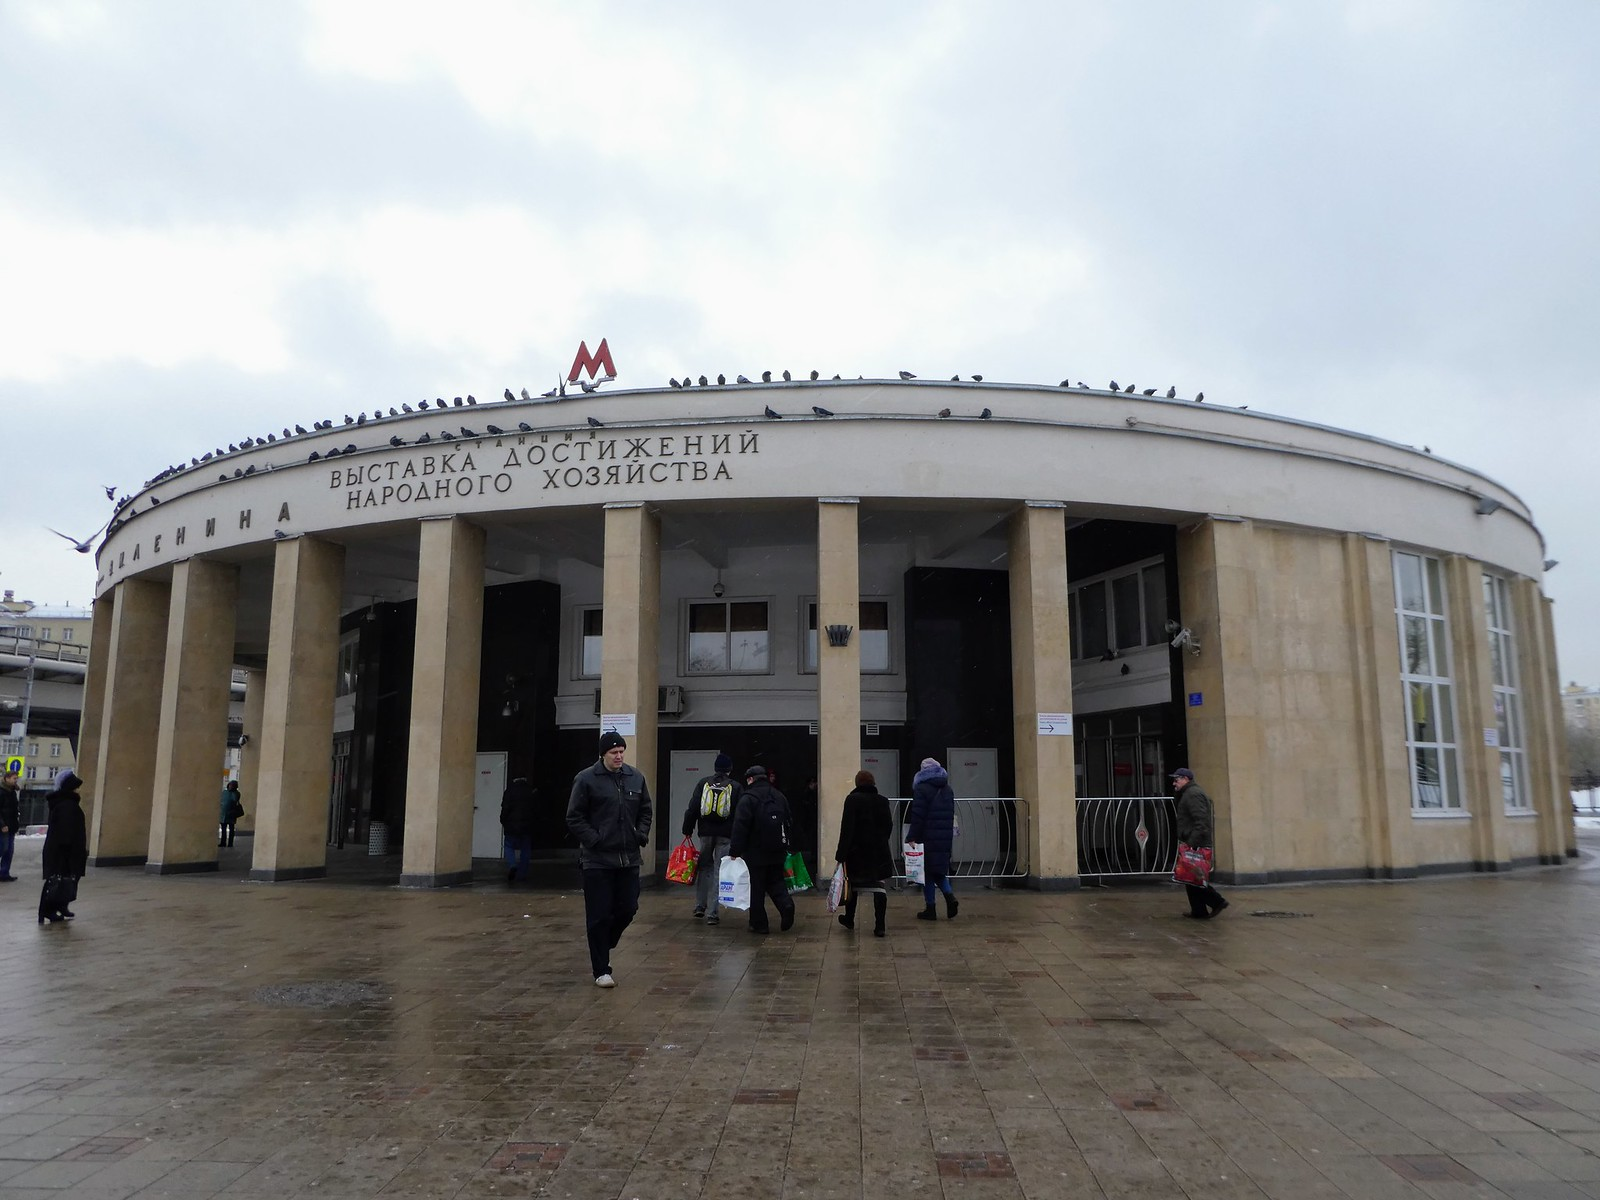 VDNKH Metro Station, Moscow